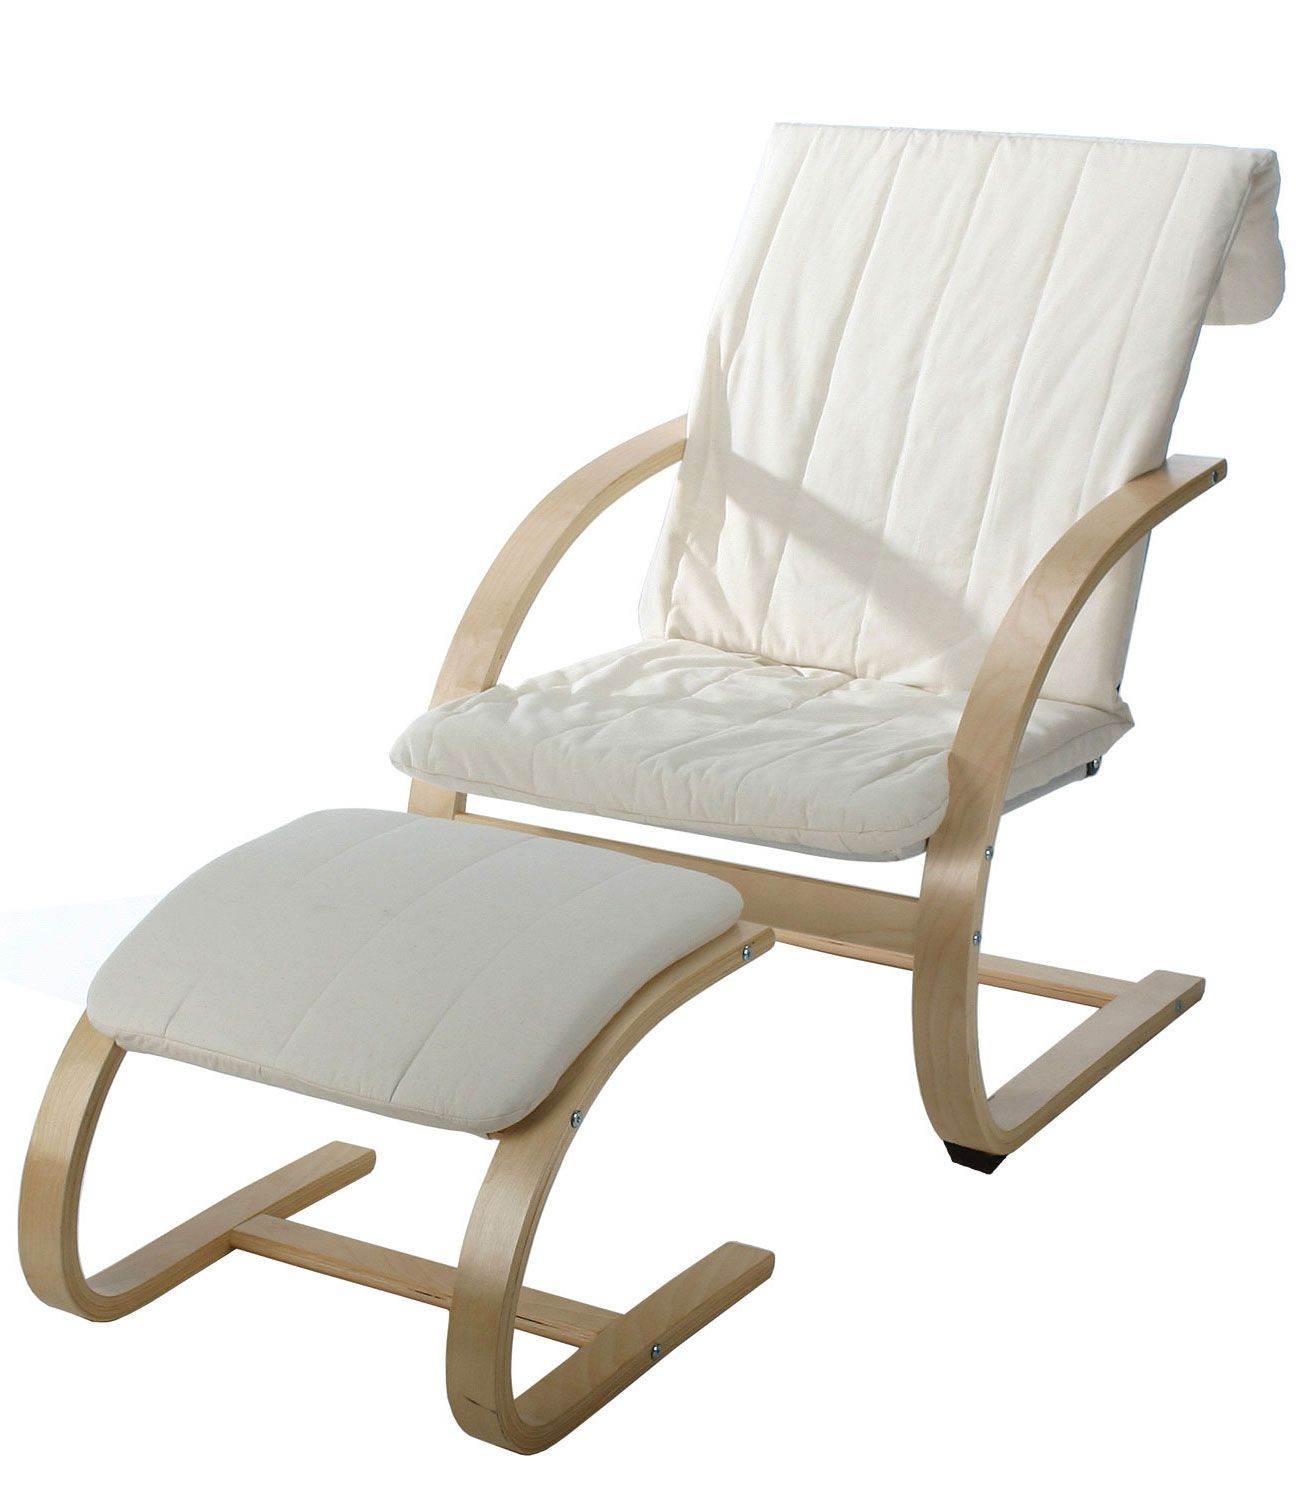 Your Kiddicare Nursery Chair And Stool Natural Reviews From Coming Soon Online Baby Equipment